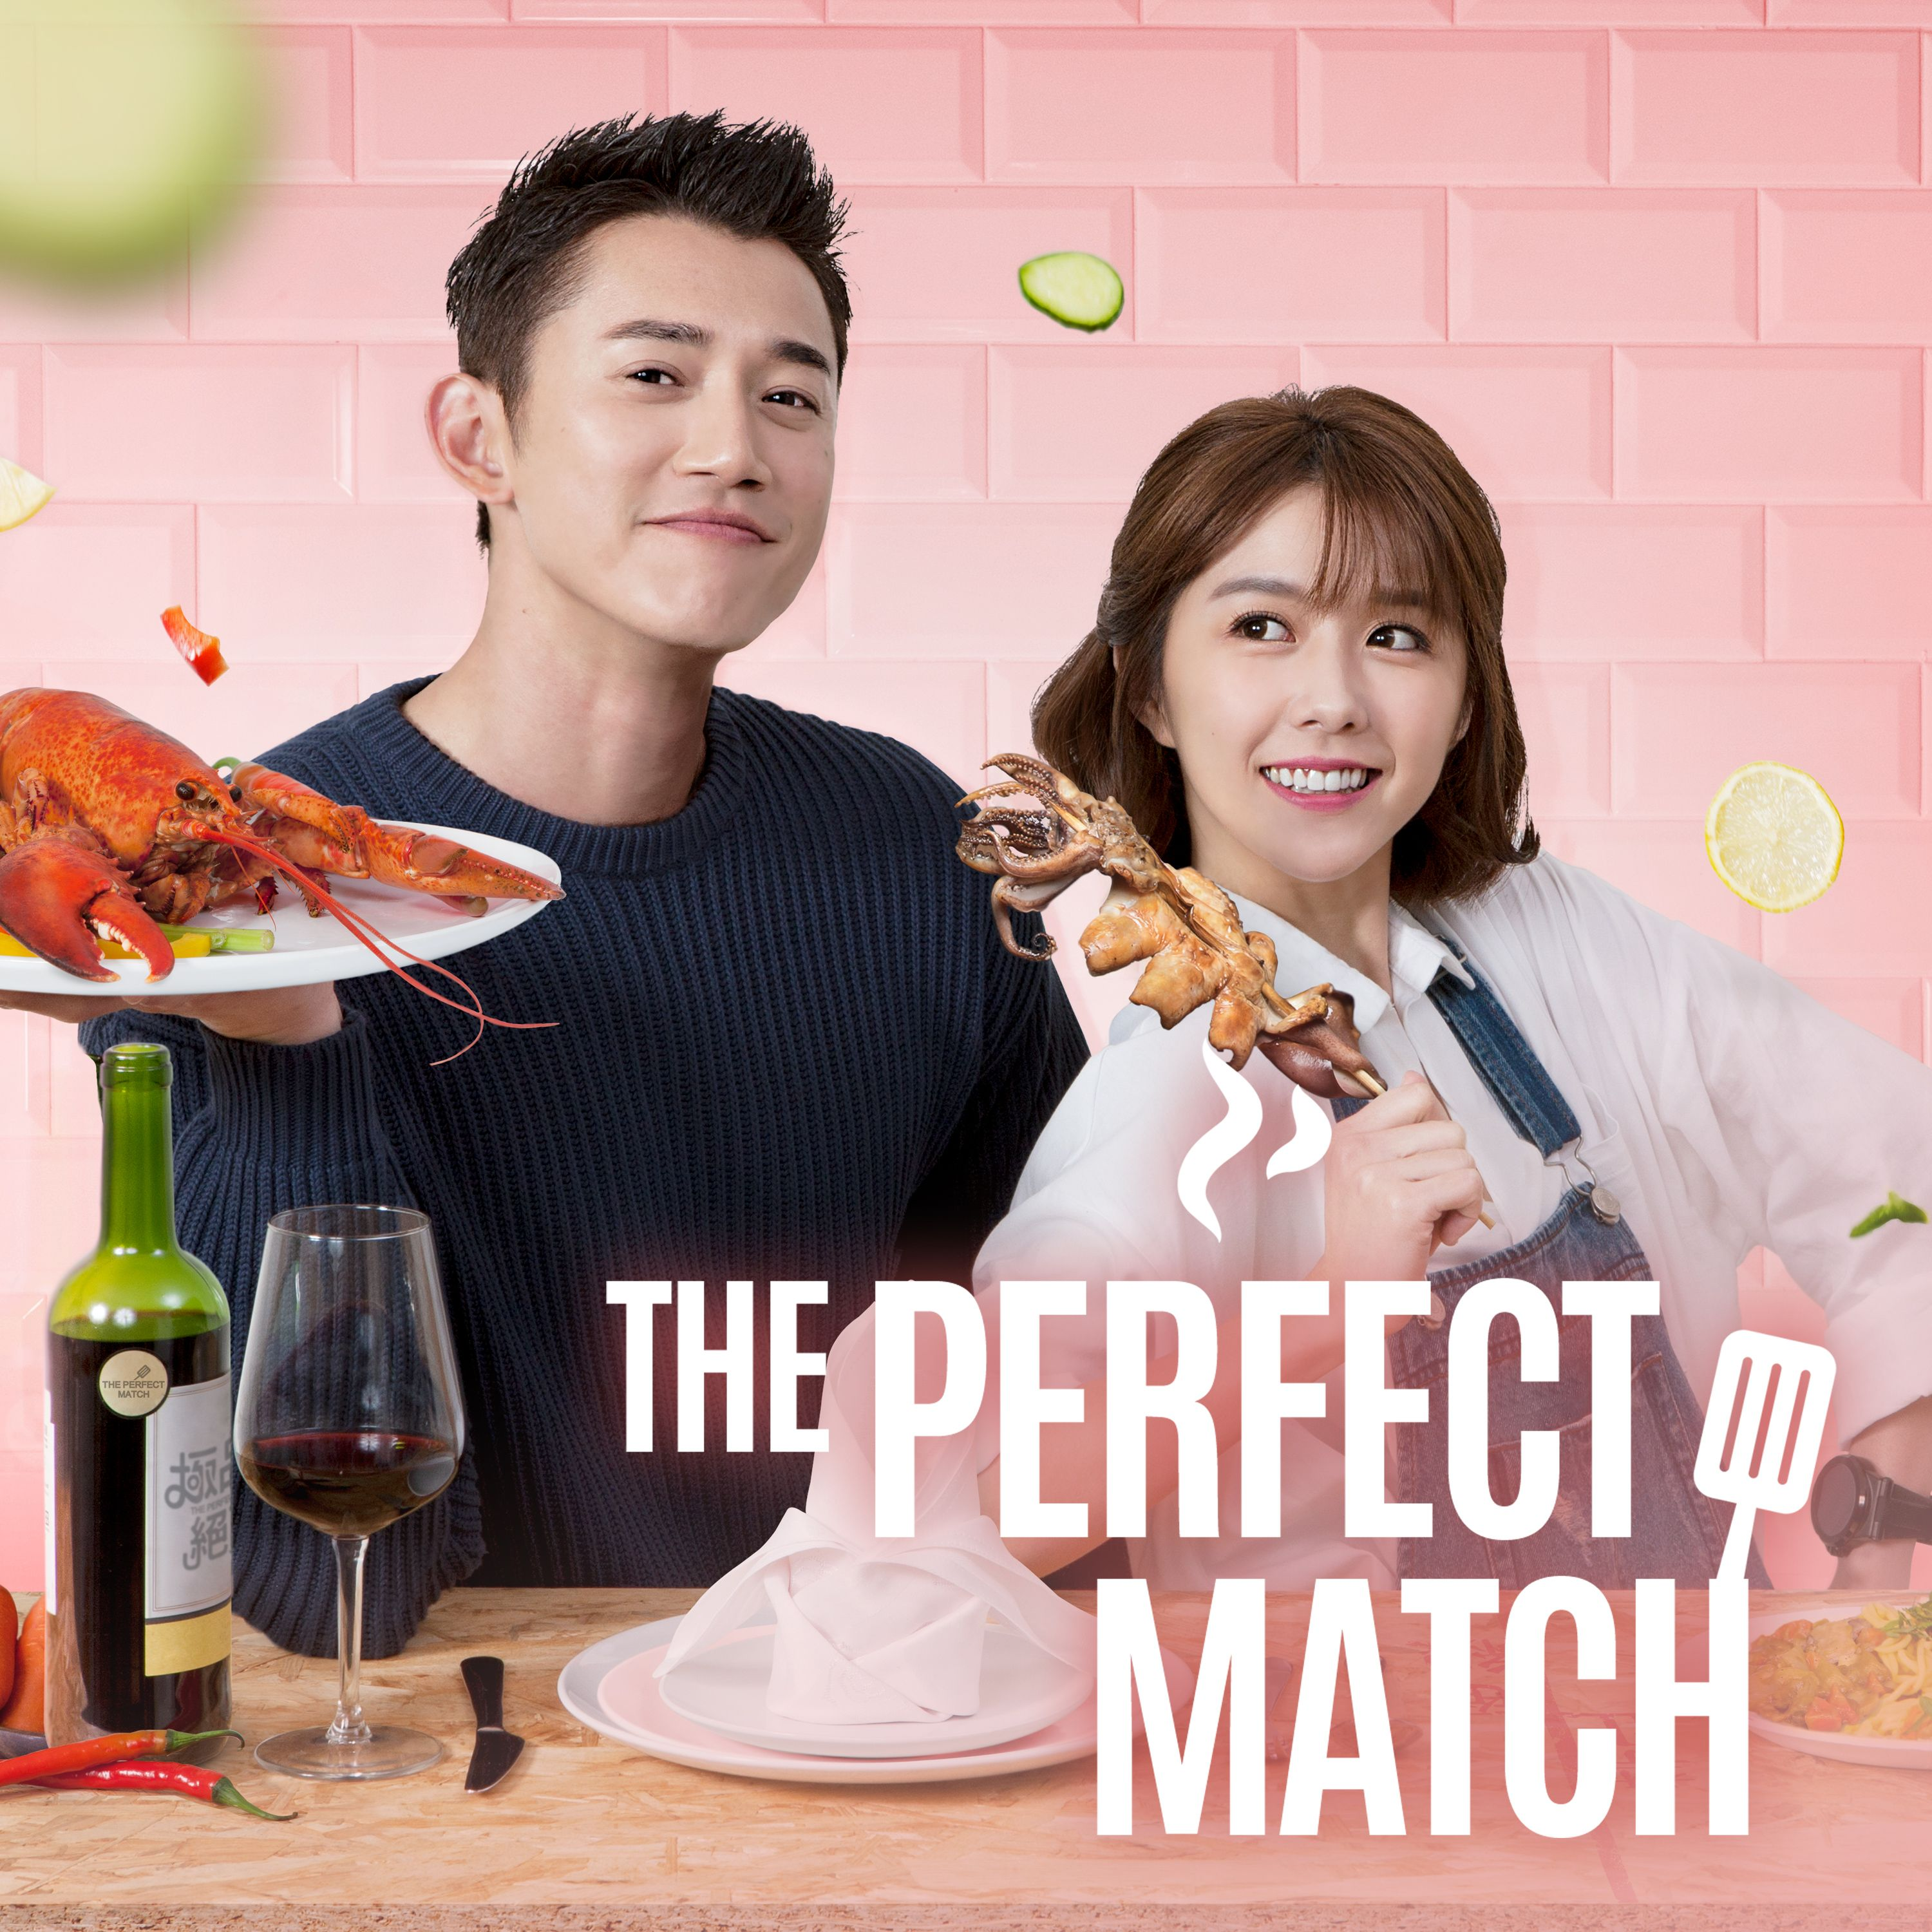 The Perfect Match Episode 1 - 極品絕配 - Watch Full Episodes